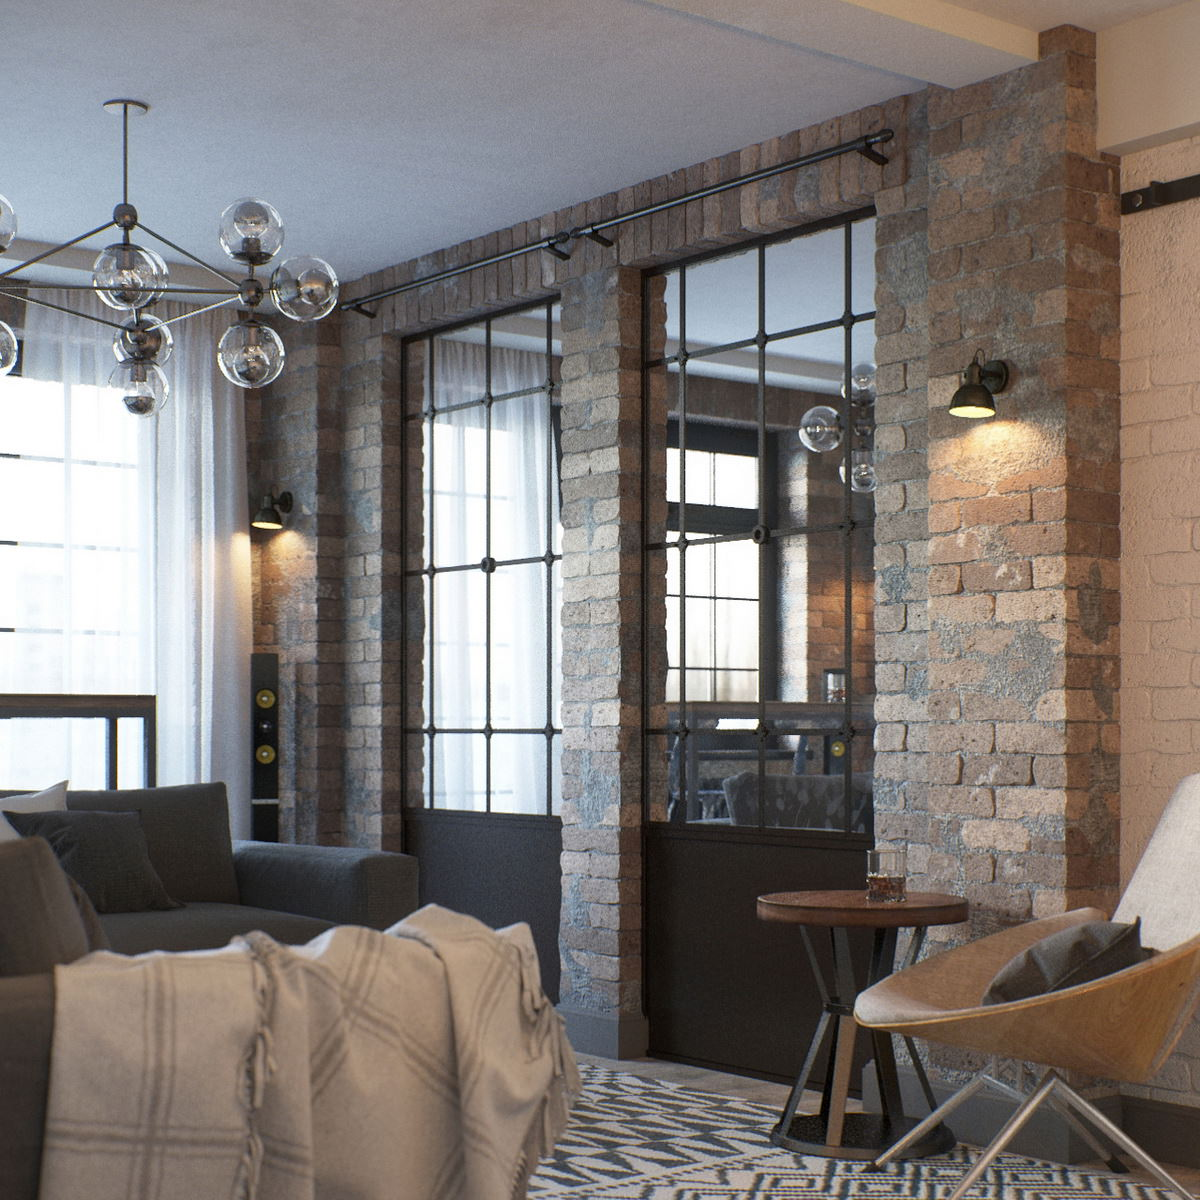 Interior Design 3d Rendering For A Chic Apartment Project: Visualization Of Loft-Style Interior Design Concept • Lunas